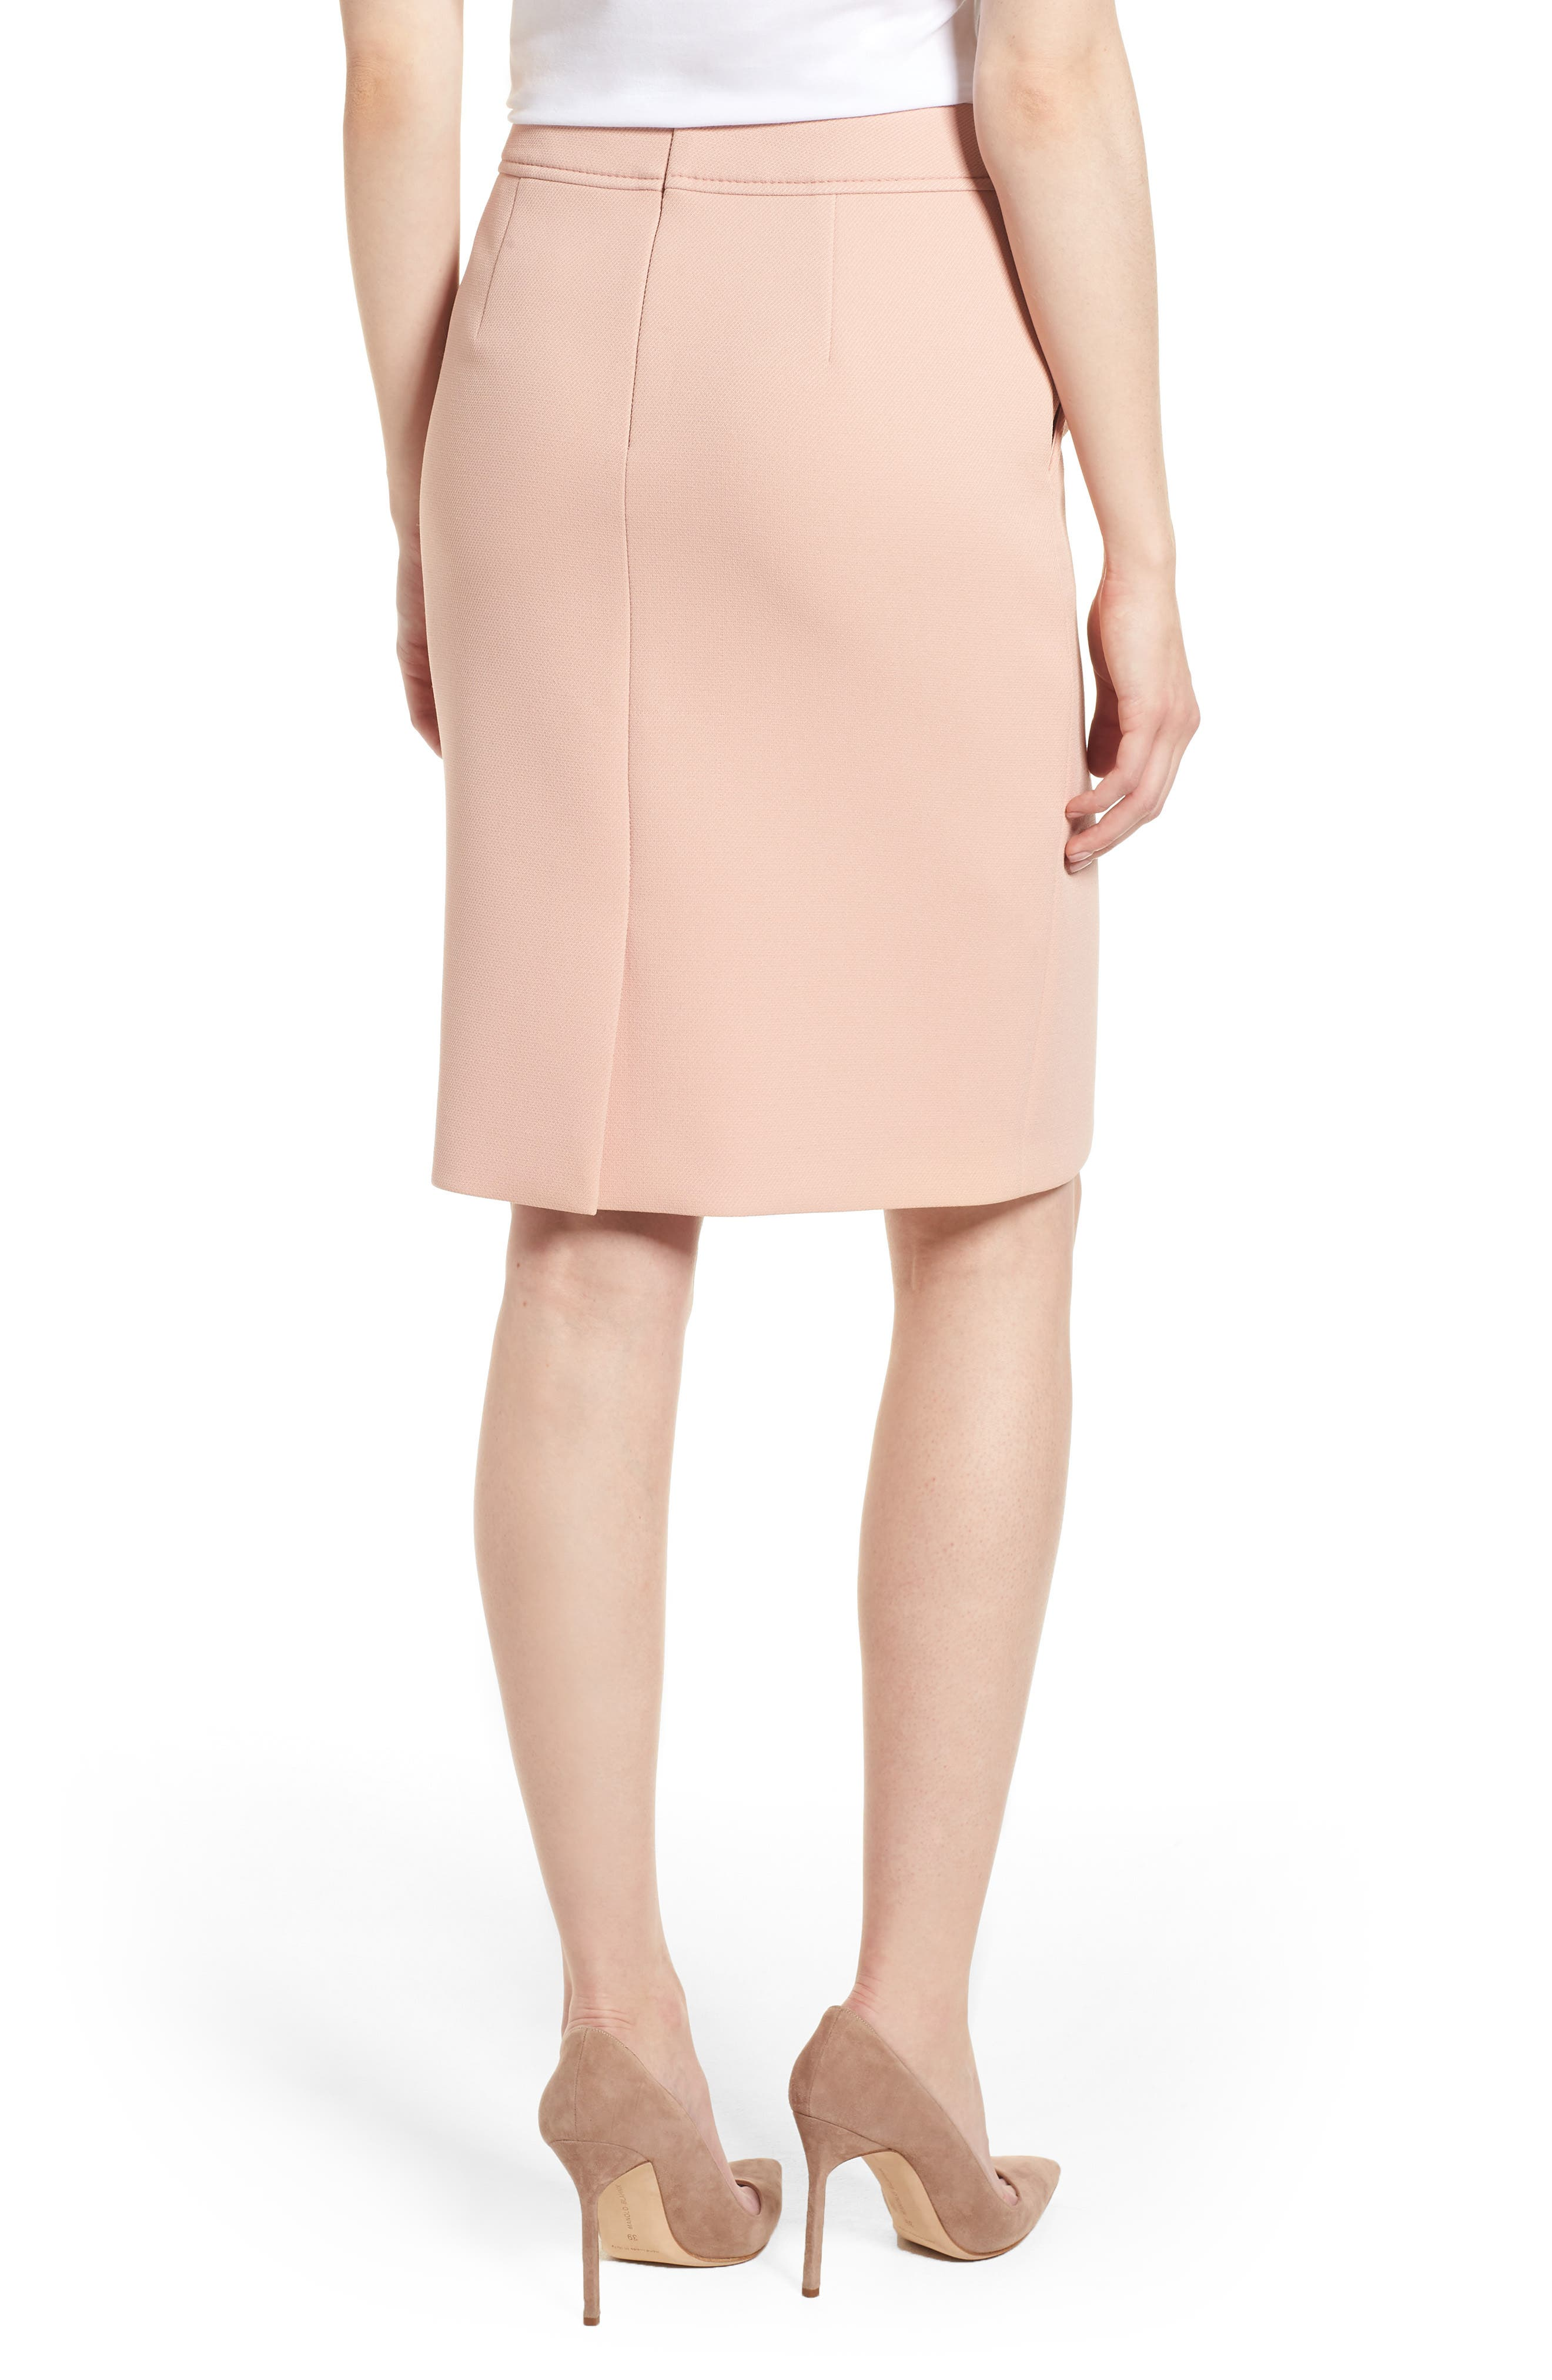 Vuleama Compact Twill Pencil Skirt,                             Alternate thumbnail 2, color,                             682